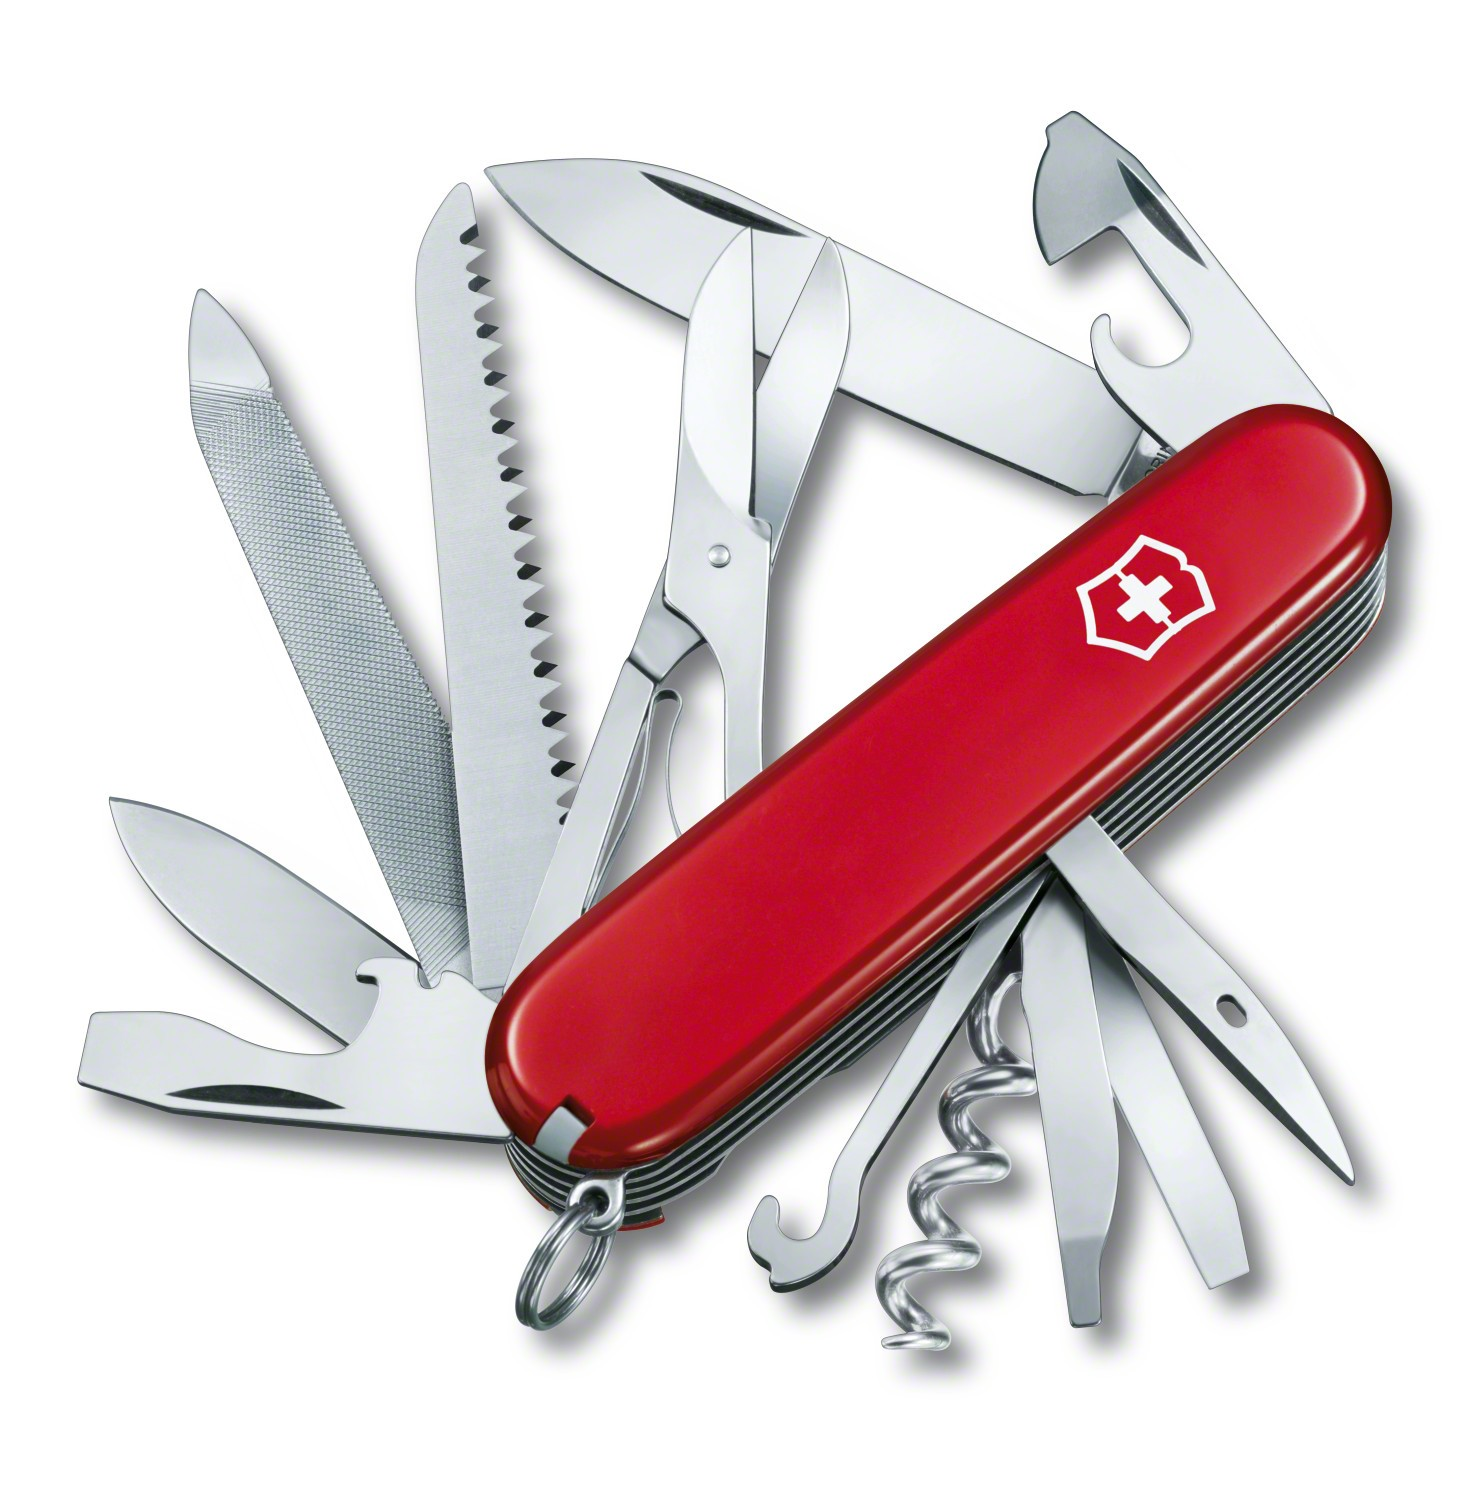 https://interpretelsf.files.wordpress.com/2013/06/couteau-suisse-multifonction-victorinox-ranger.jpg